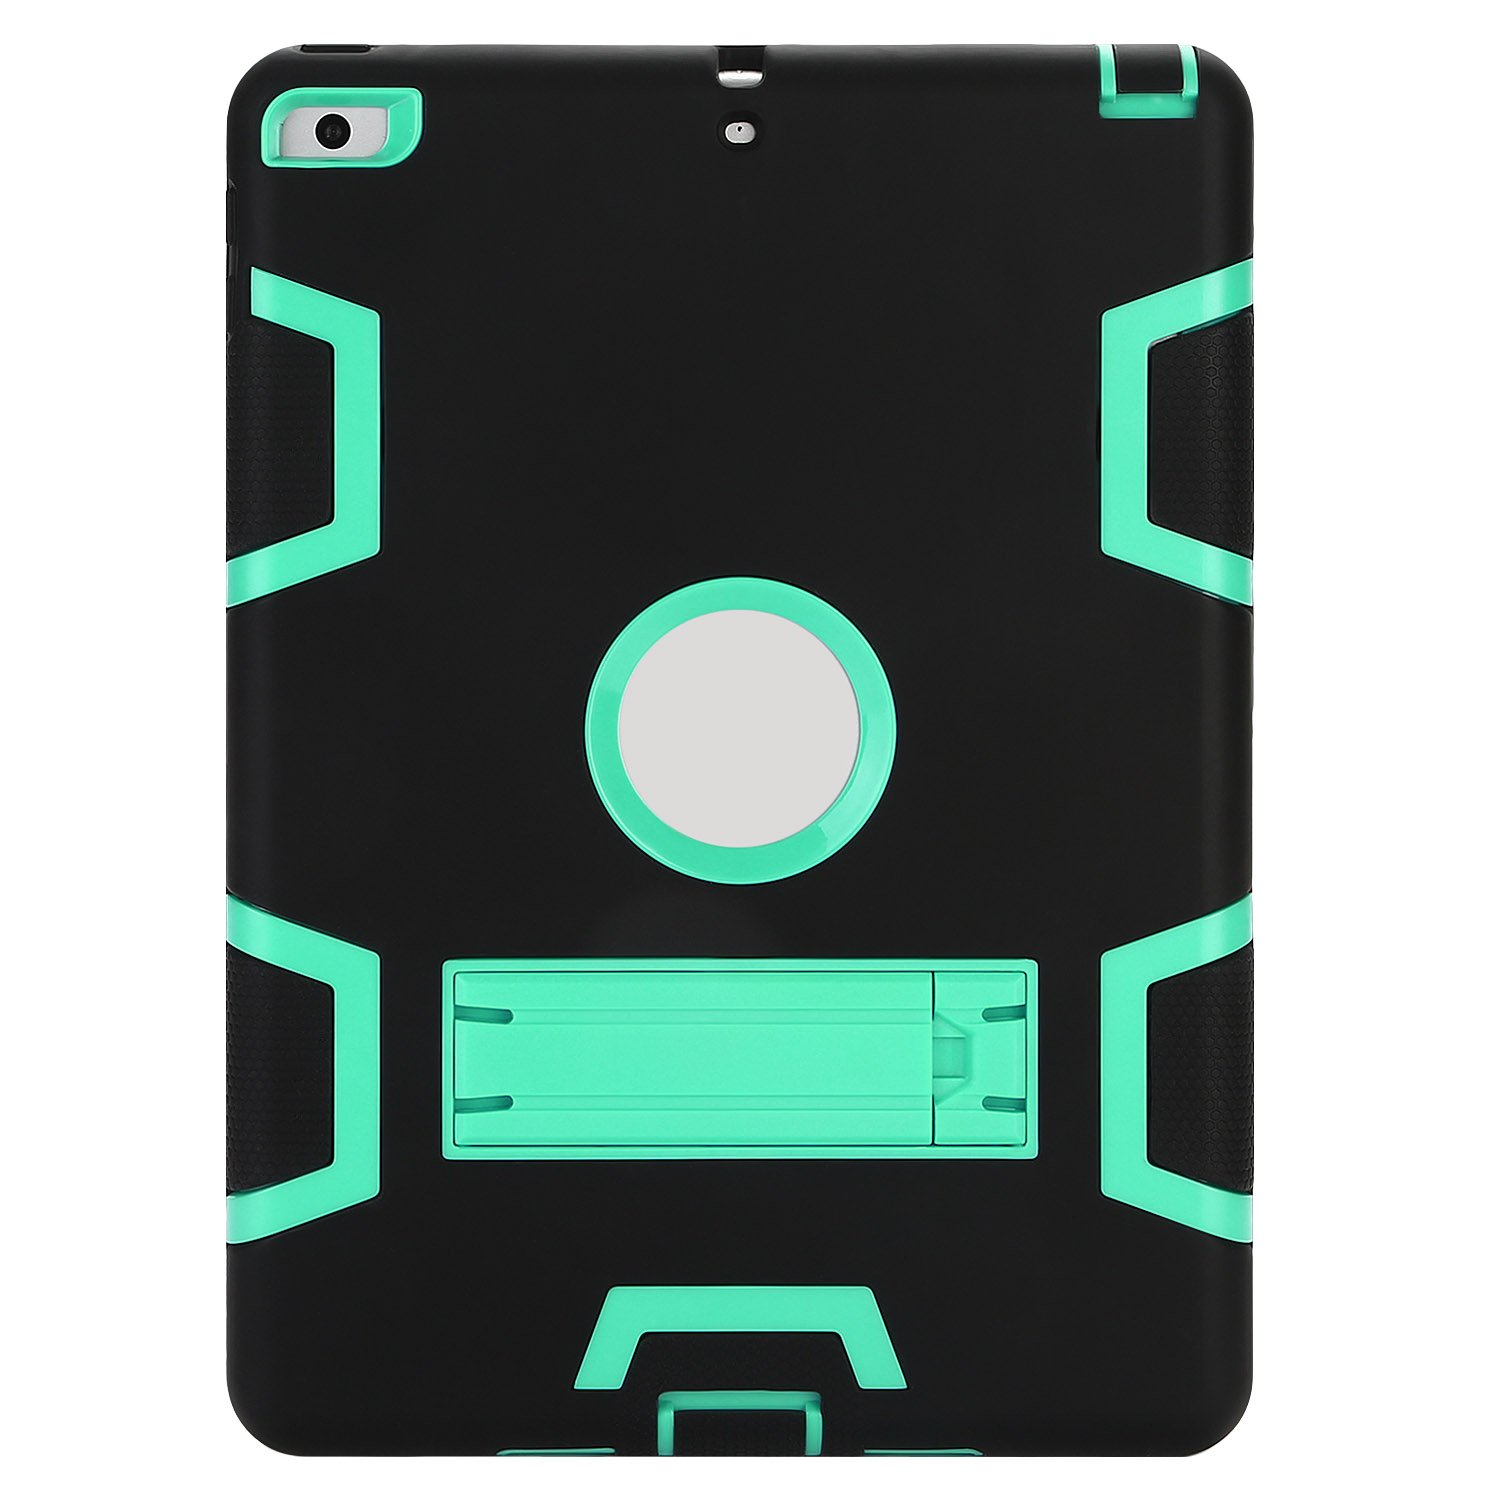 Rugged 3-Layer Heavy Duty Shock Proof iPad 234 Mini Pro Air Case Shell Cover 45